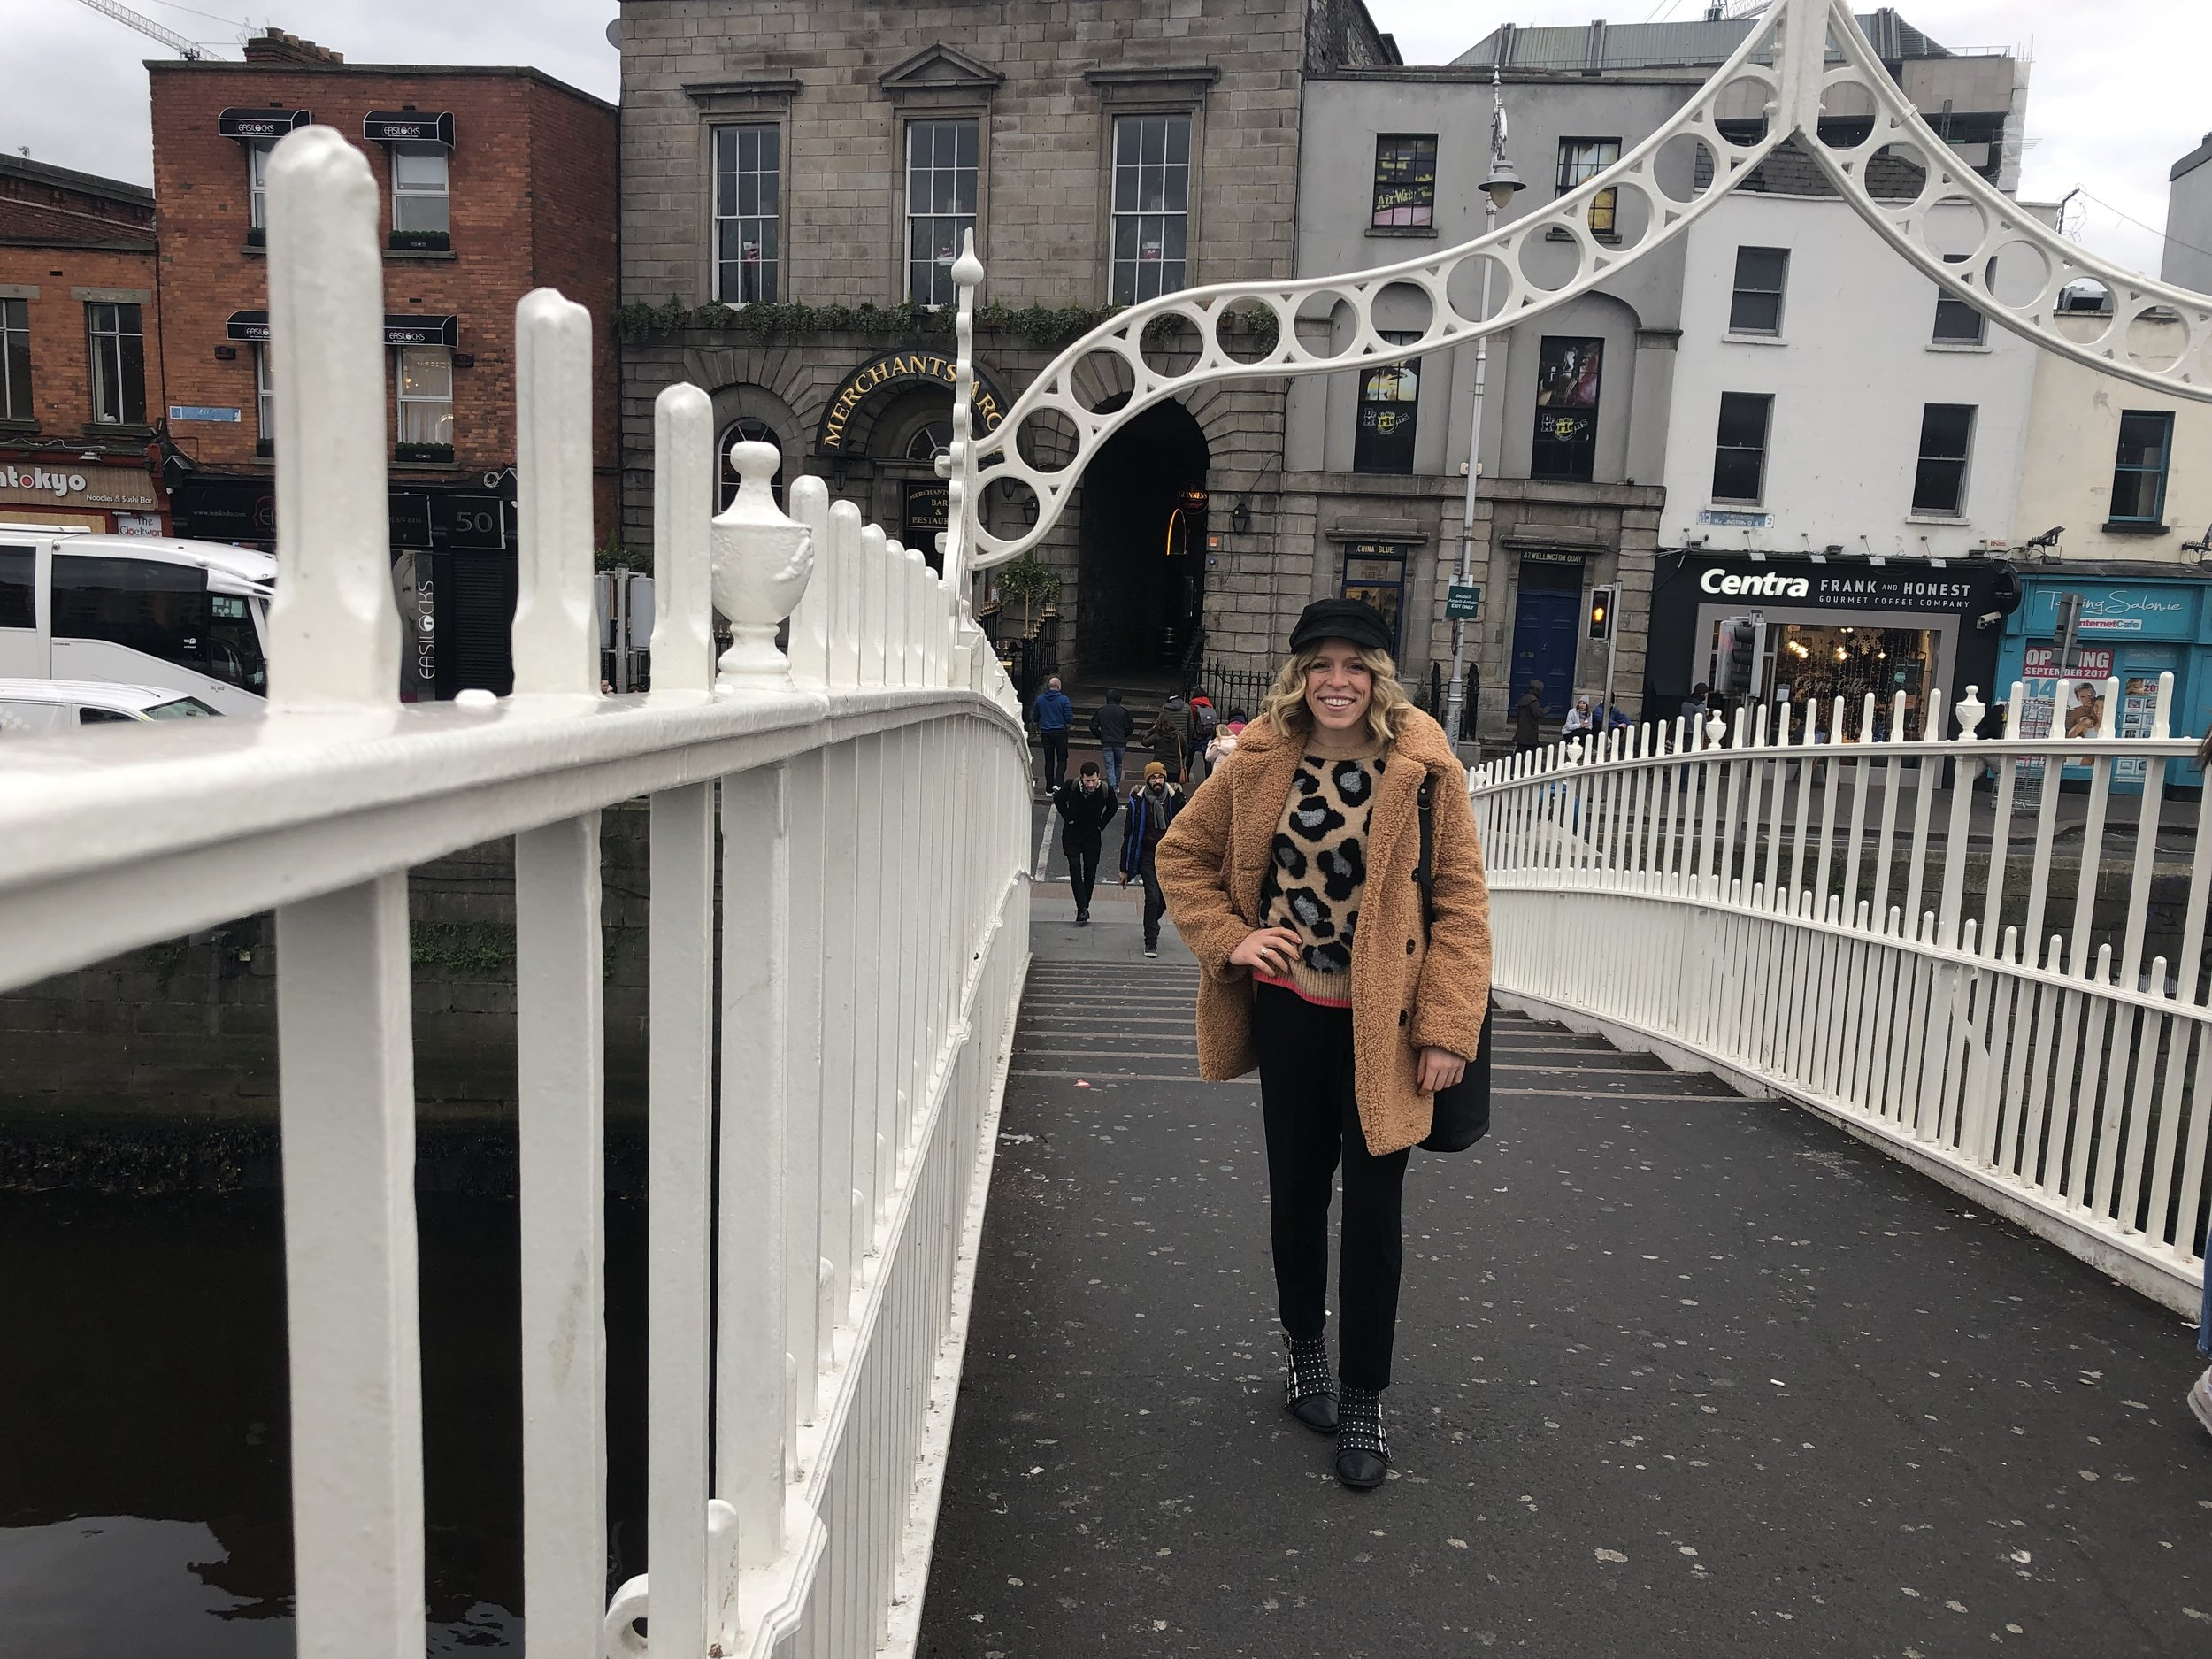 Wearing    Topshop    Teddy Coat,    Marks & Spencer    Sweater,    Aritzia    Trousers,    Sam Edelman    Booties,    Free People    Hat,    Market Canvas Leather    Bag